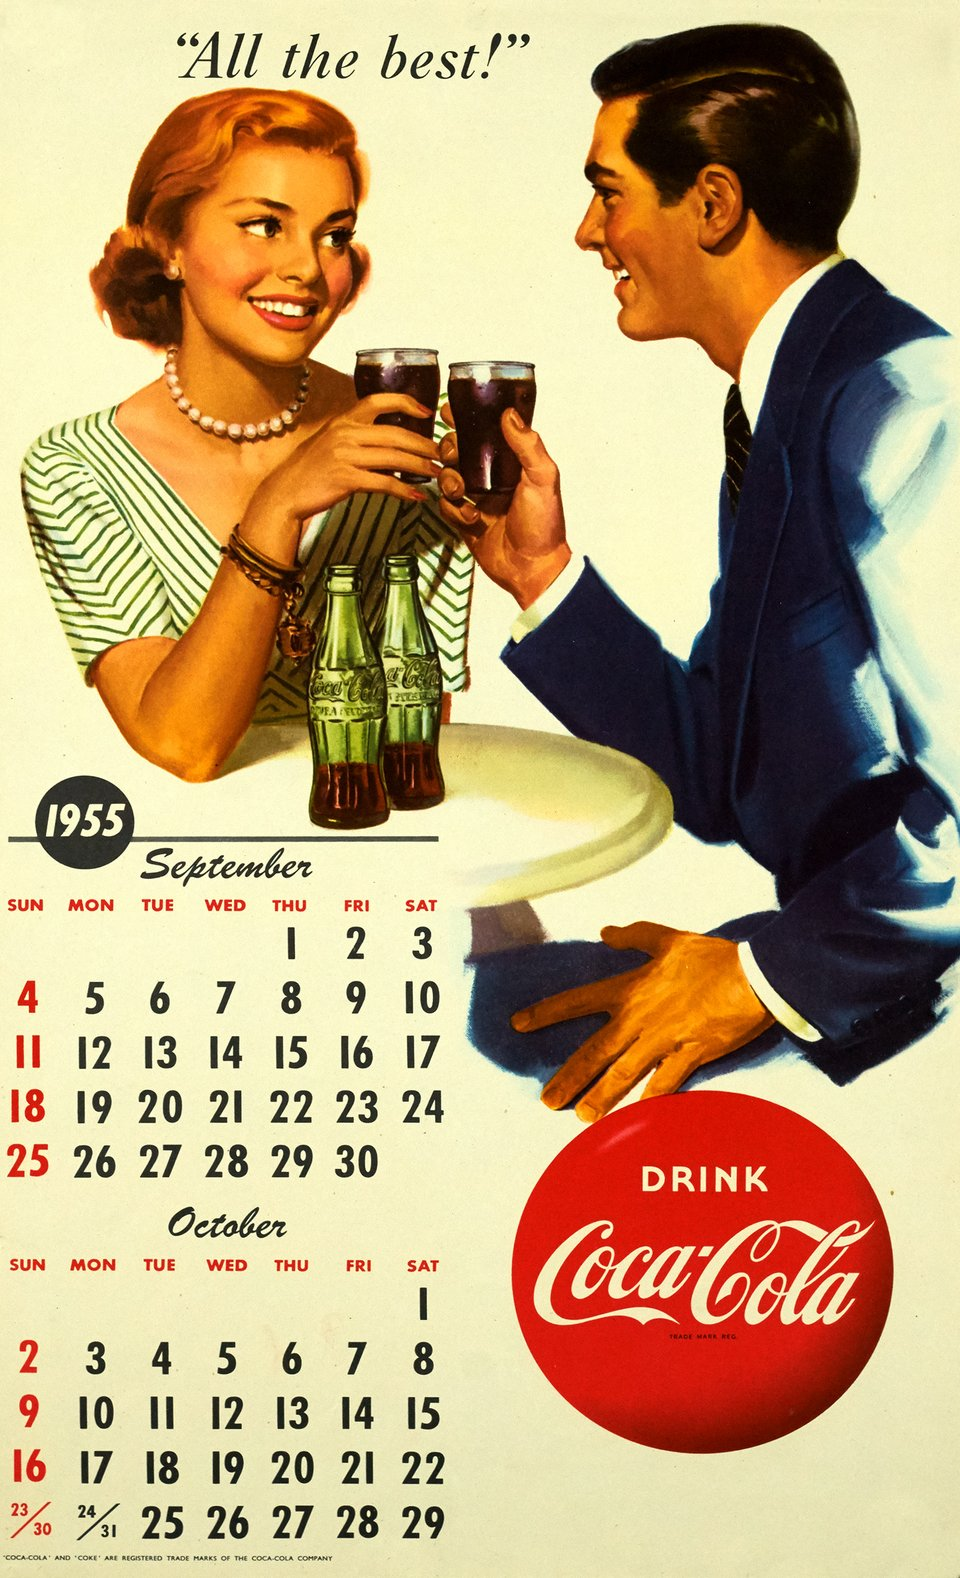 All the best, Drink Coca-Cola – Vintage poster –  ANONYME – 1955